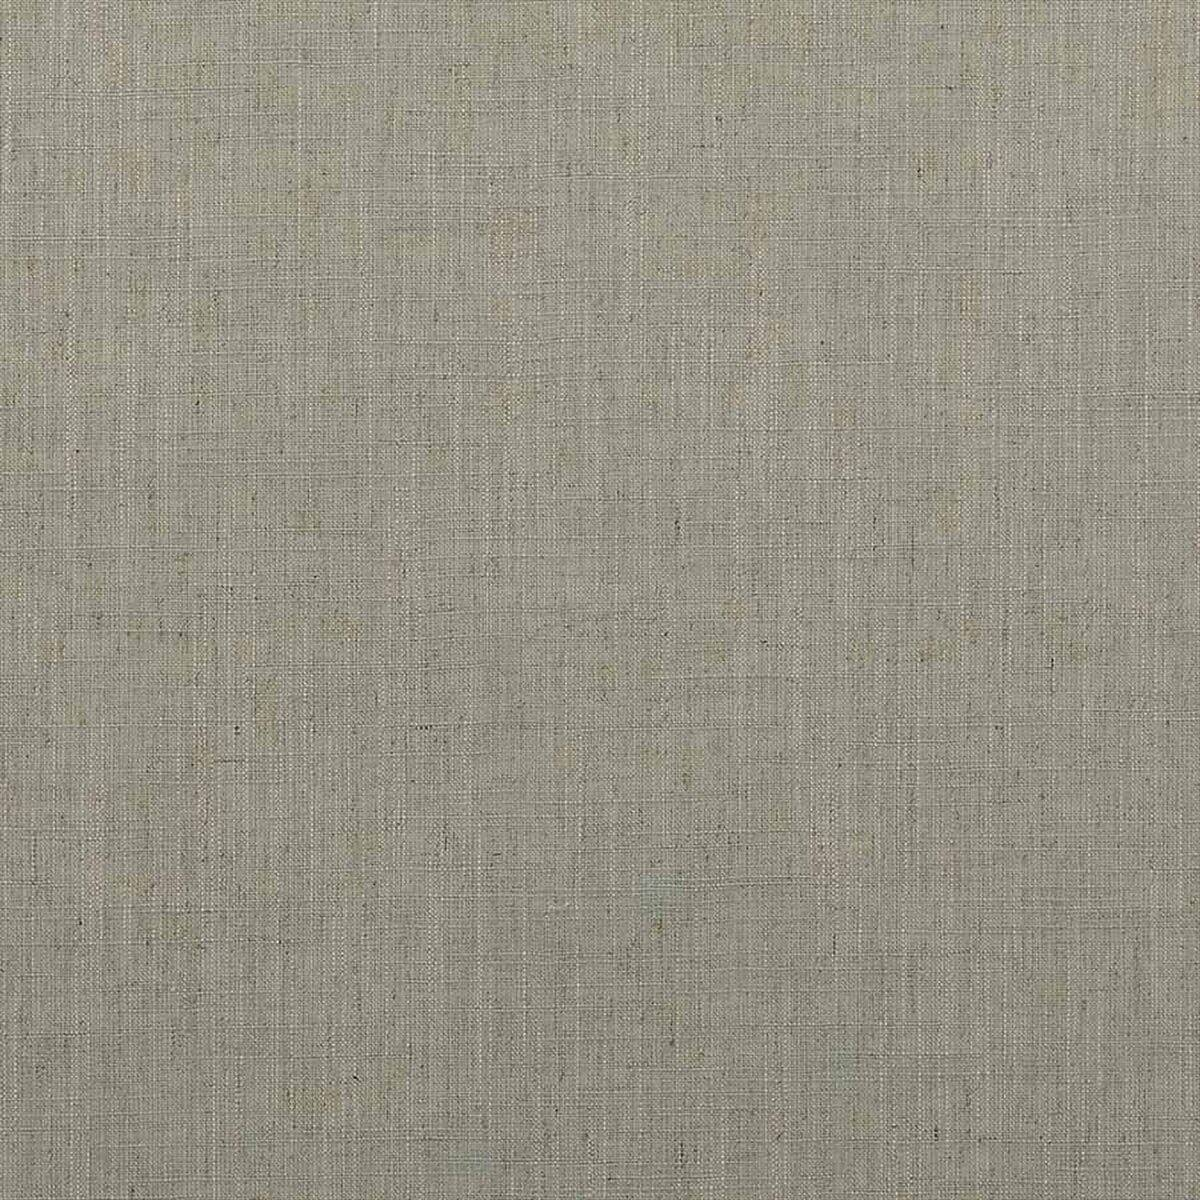 1593 Collection - Sunwashed Linen